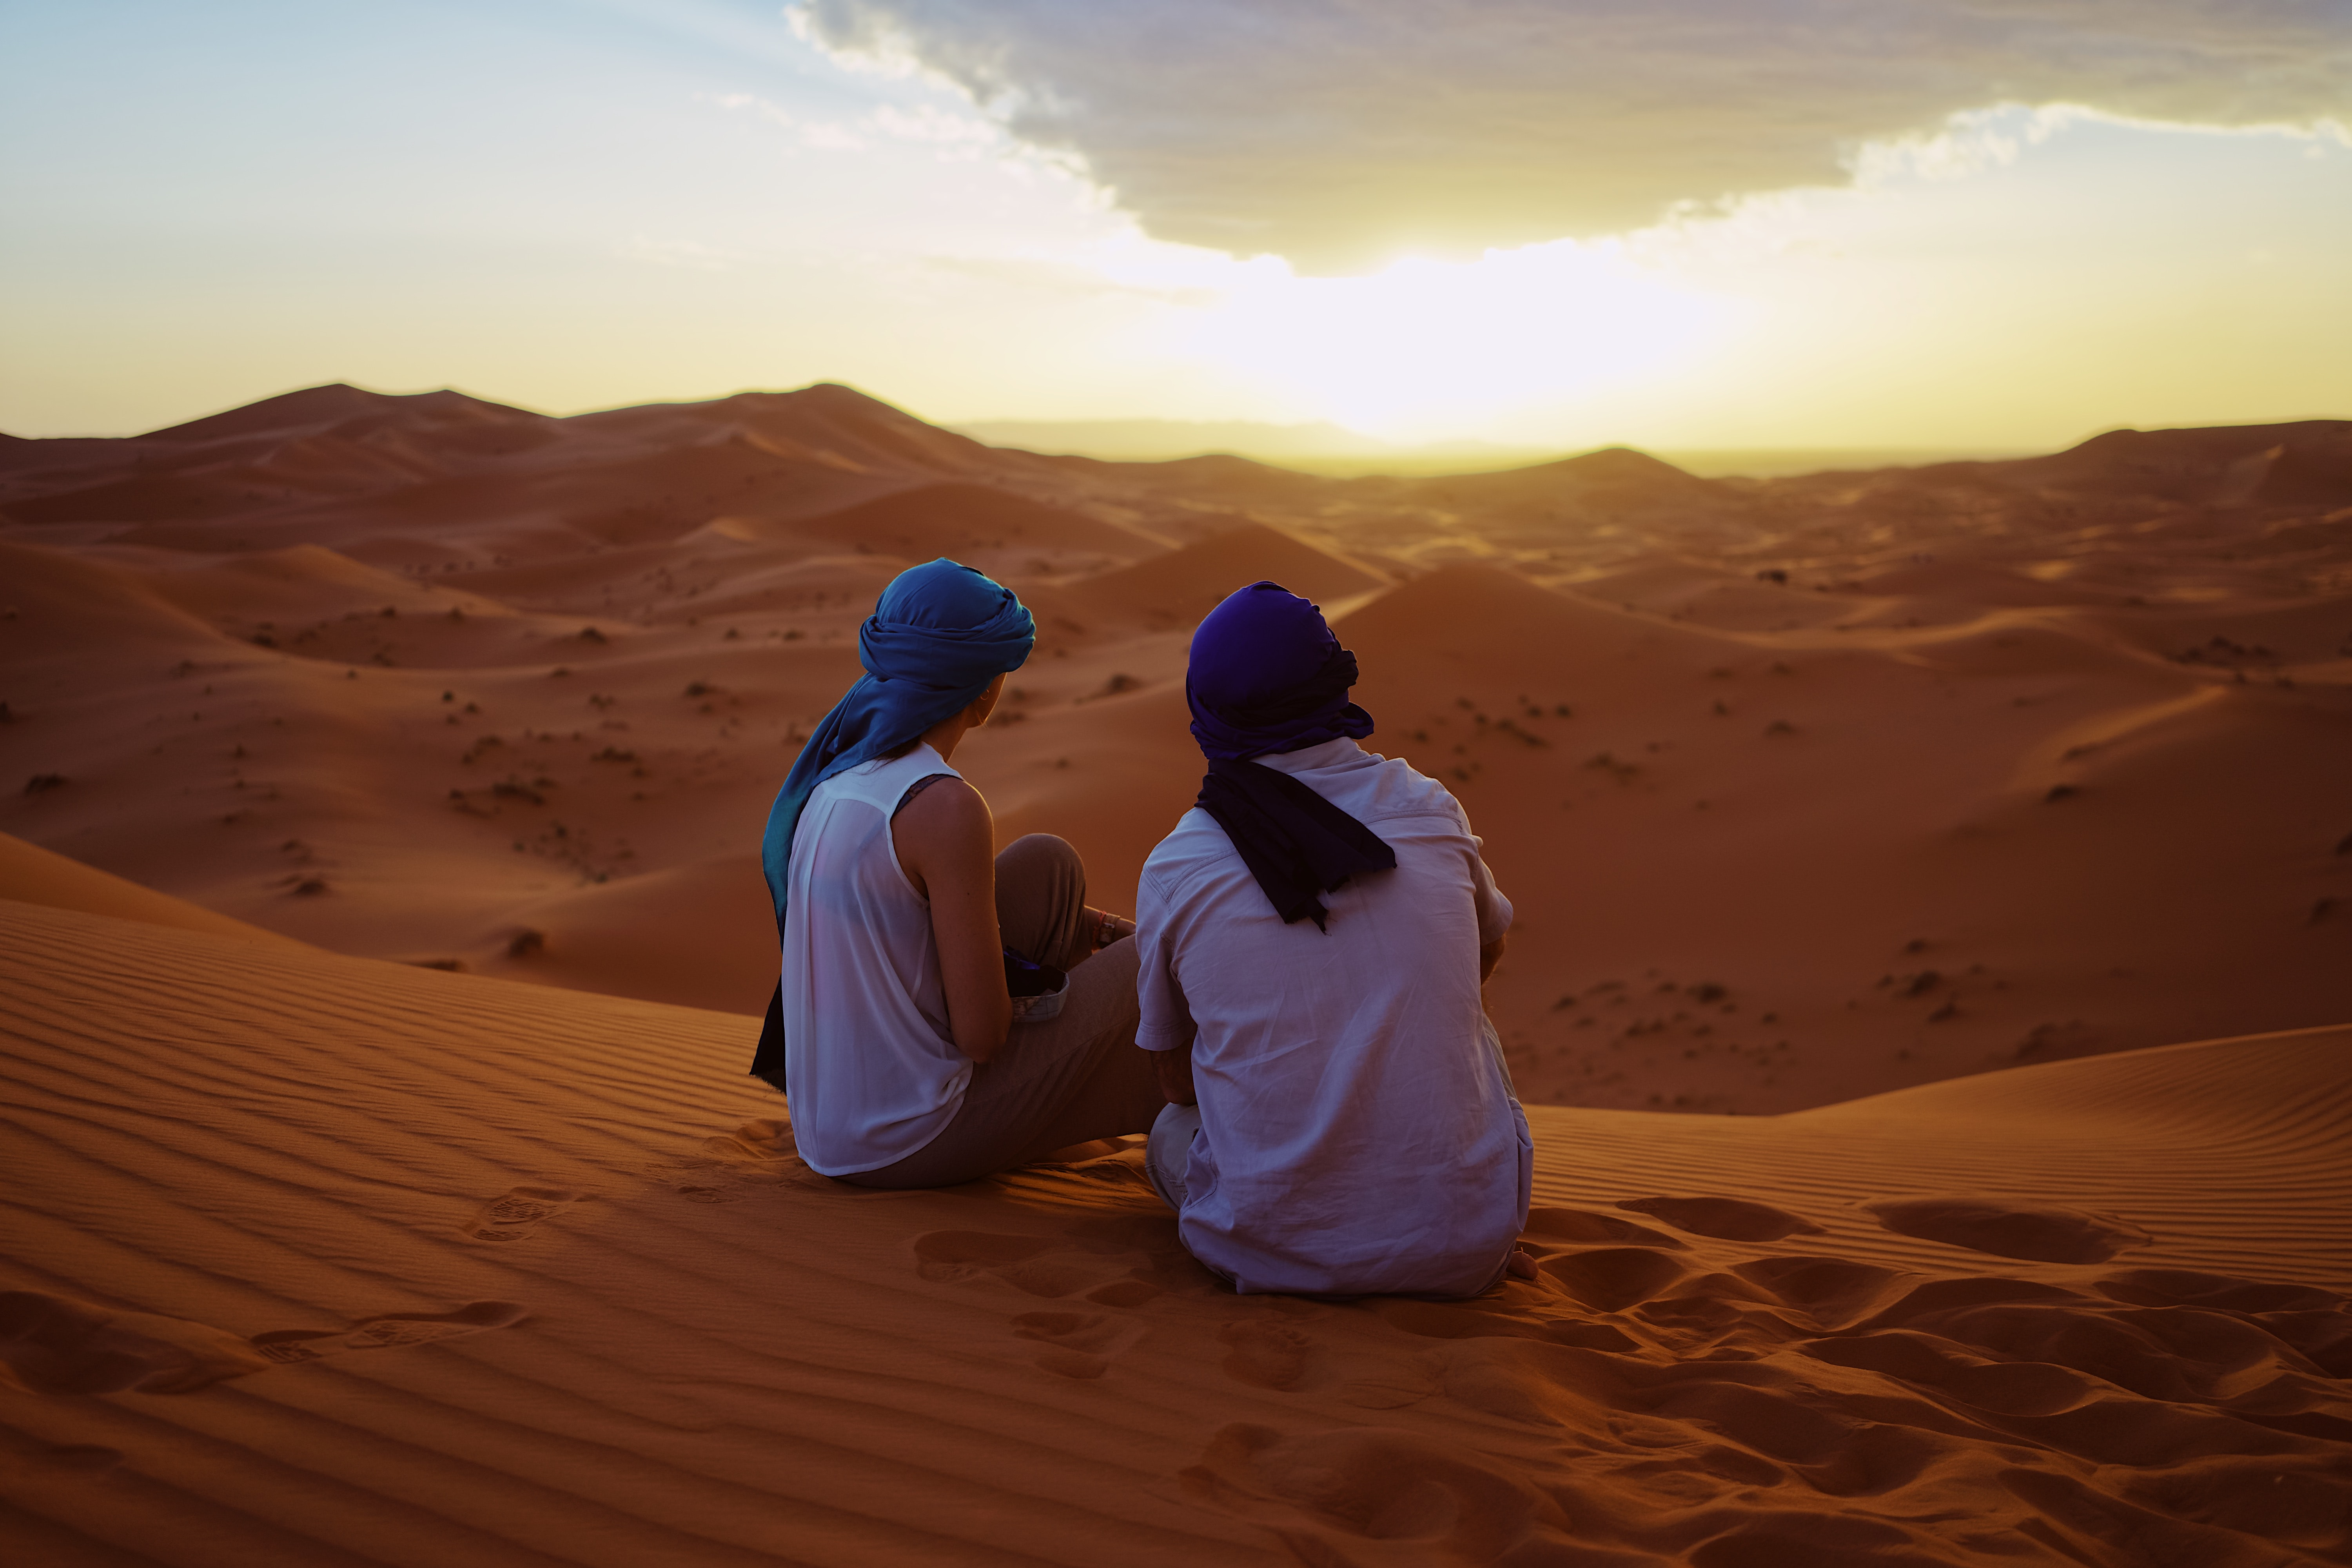 Where can I watch the sunset in Marrakech?